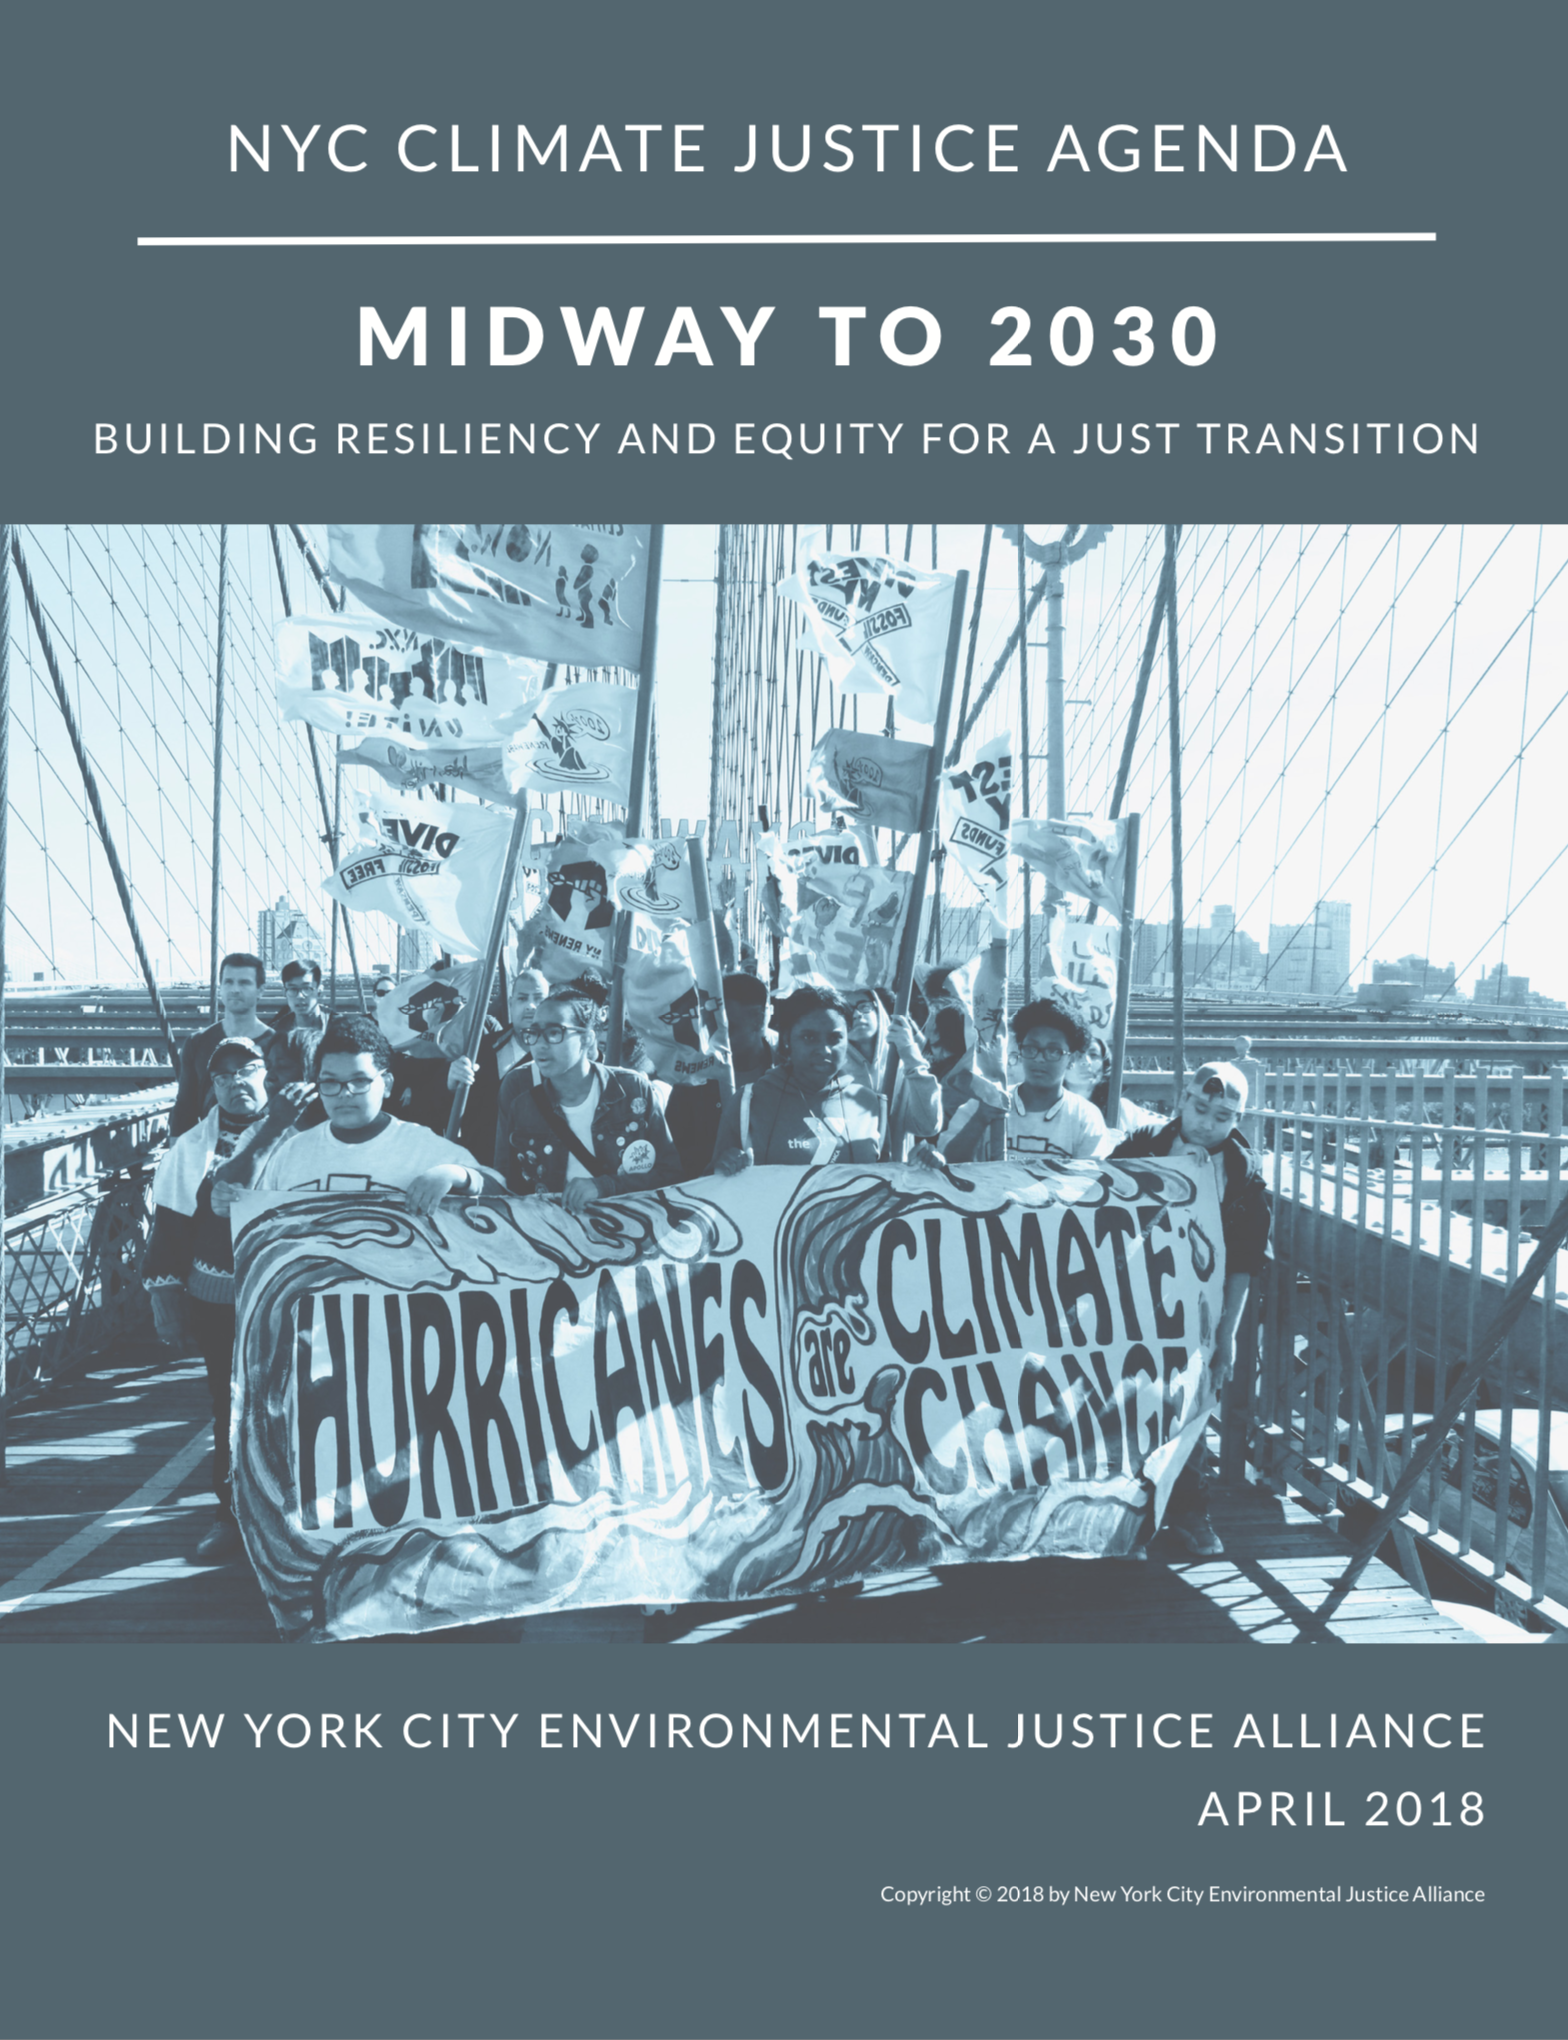 Midway to 2030: Building Resiliency and Equity for a Just Transition